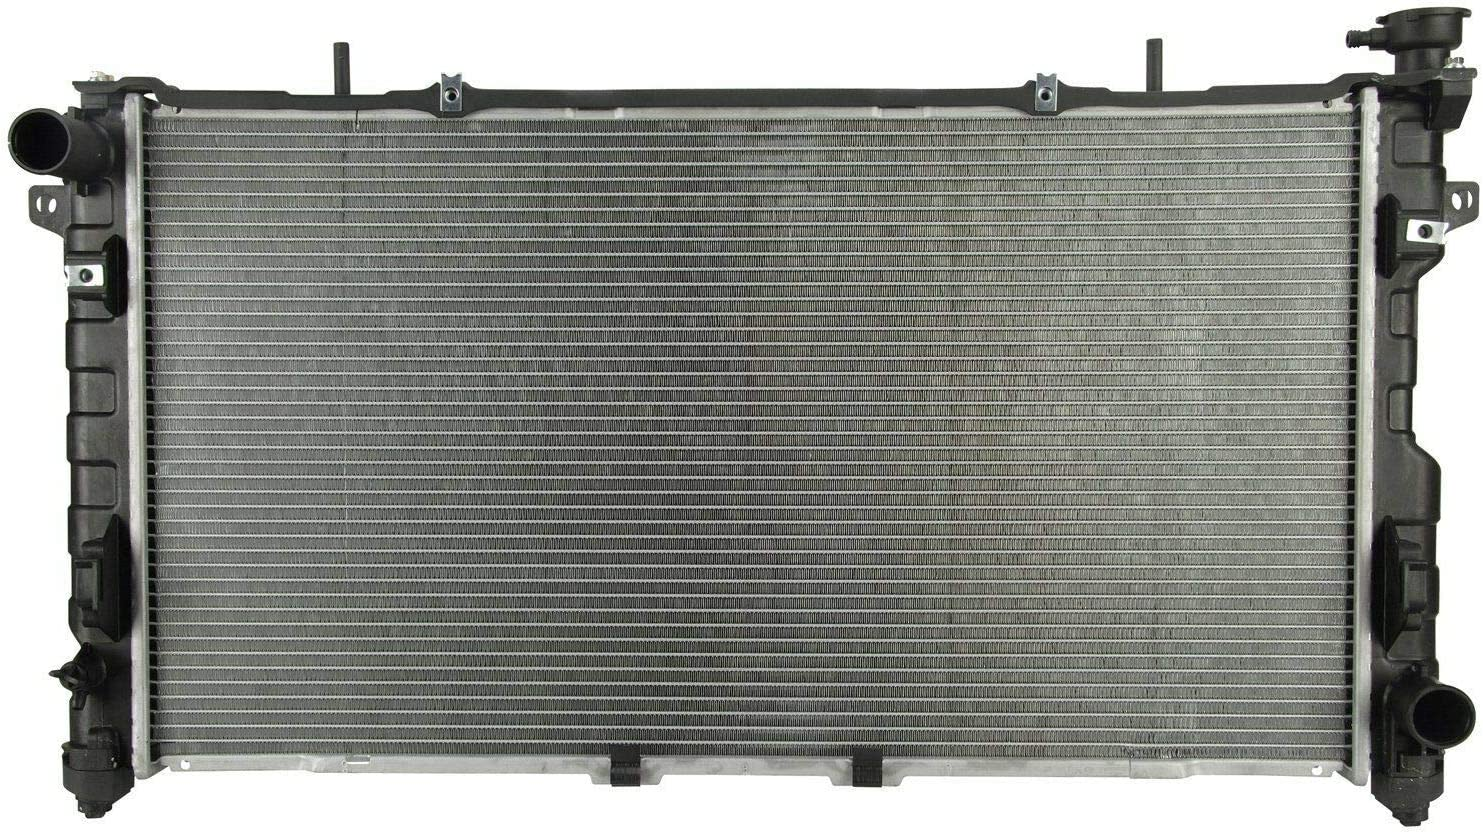 Klimoto Radiator | fits Dodge Grand Caravan Chrysler Town & Country 2001-2004 3.3L 3.8L V6 | Replaces CH3010162 CH3010277 4809225AC 4809225AE